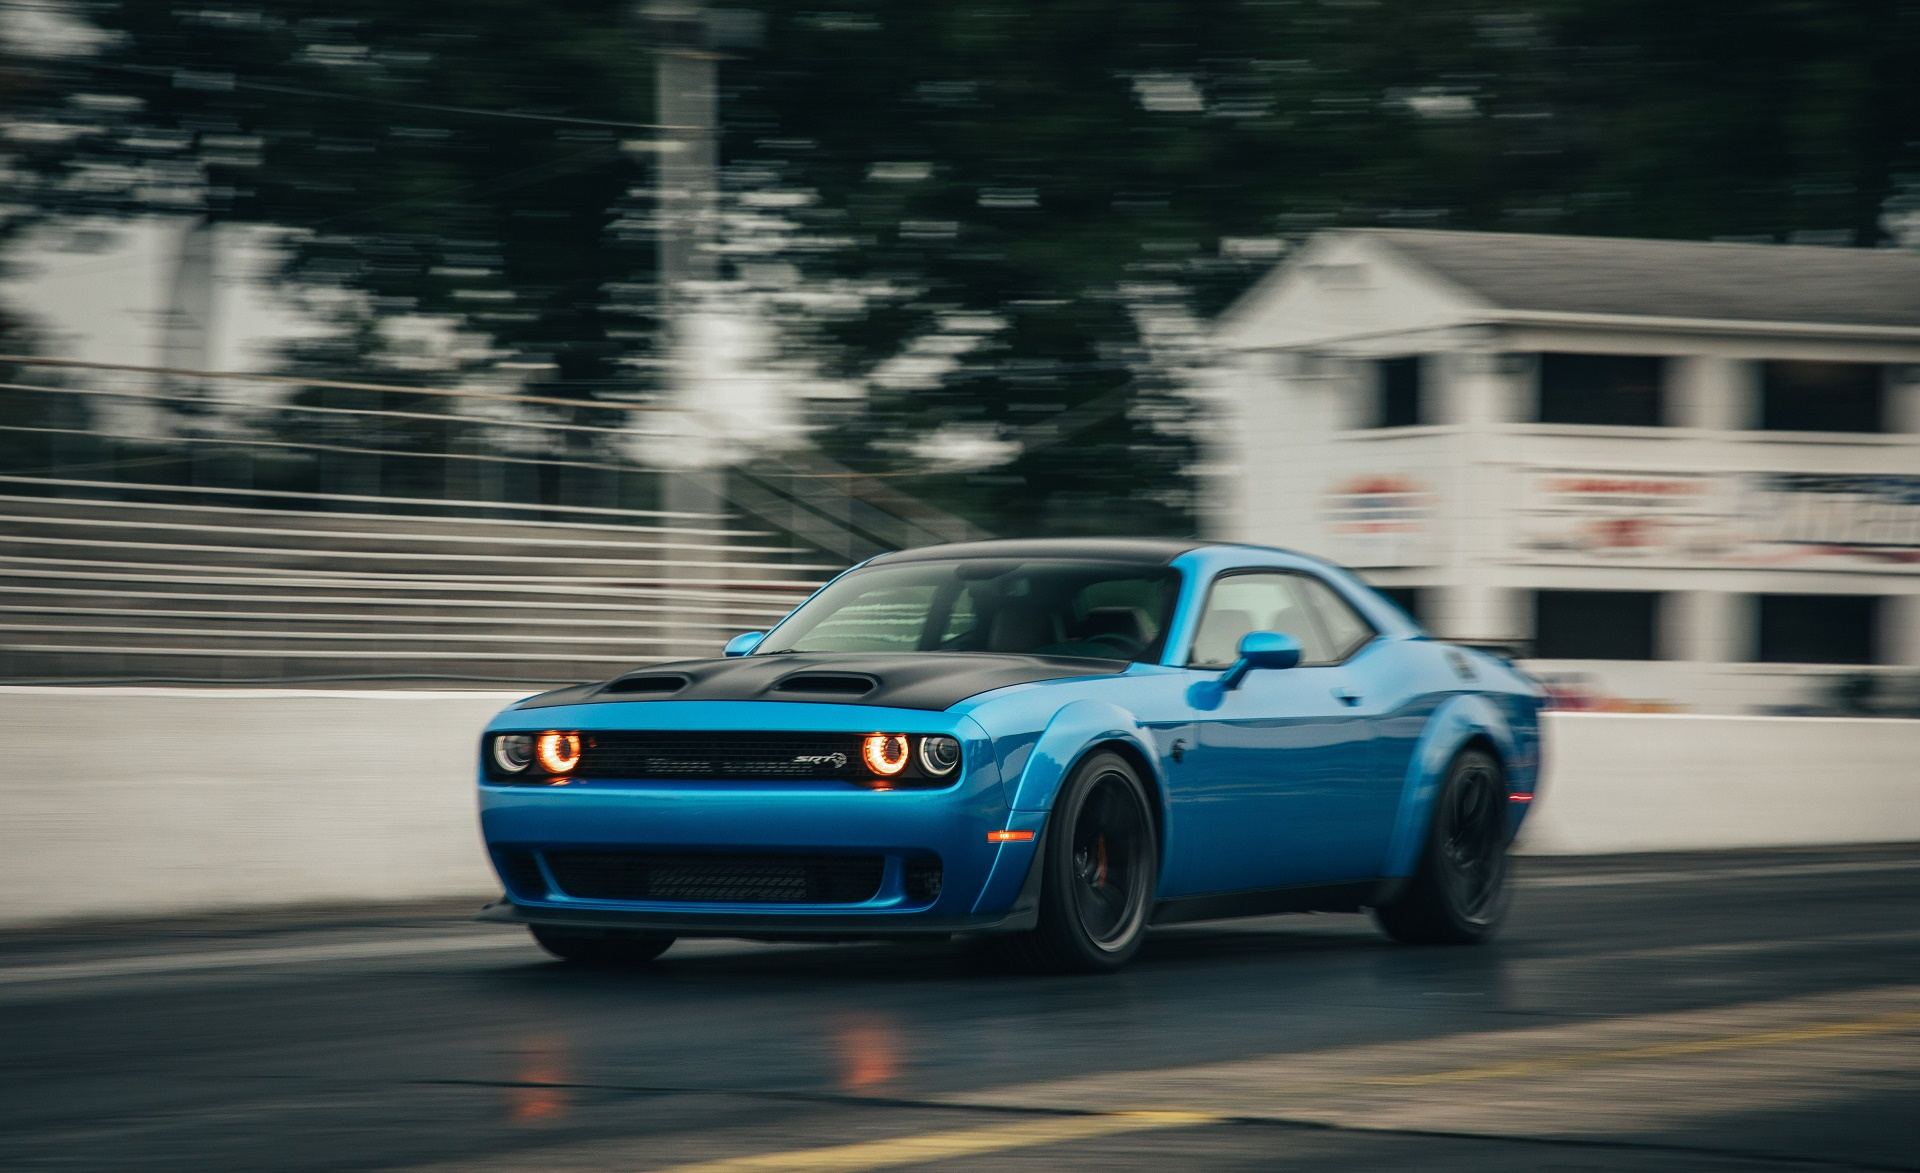 2019 Dodge Challenger Srt Hellcat Redeye Wallpapers 54 Hd Images Newcarcars